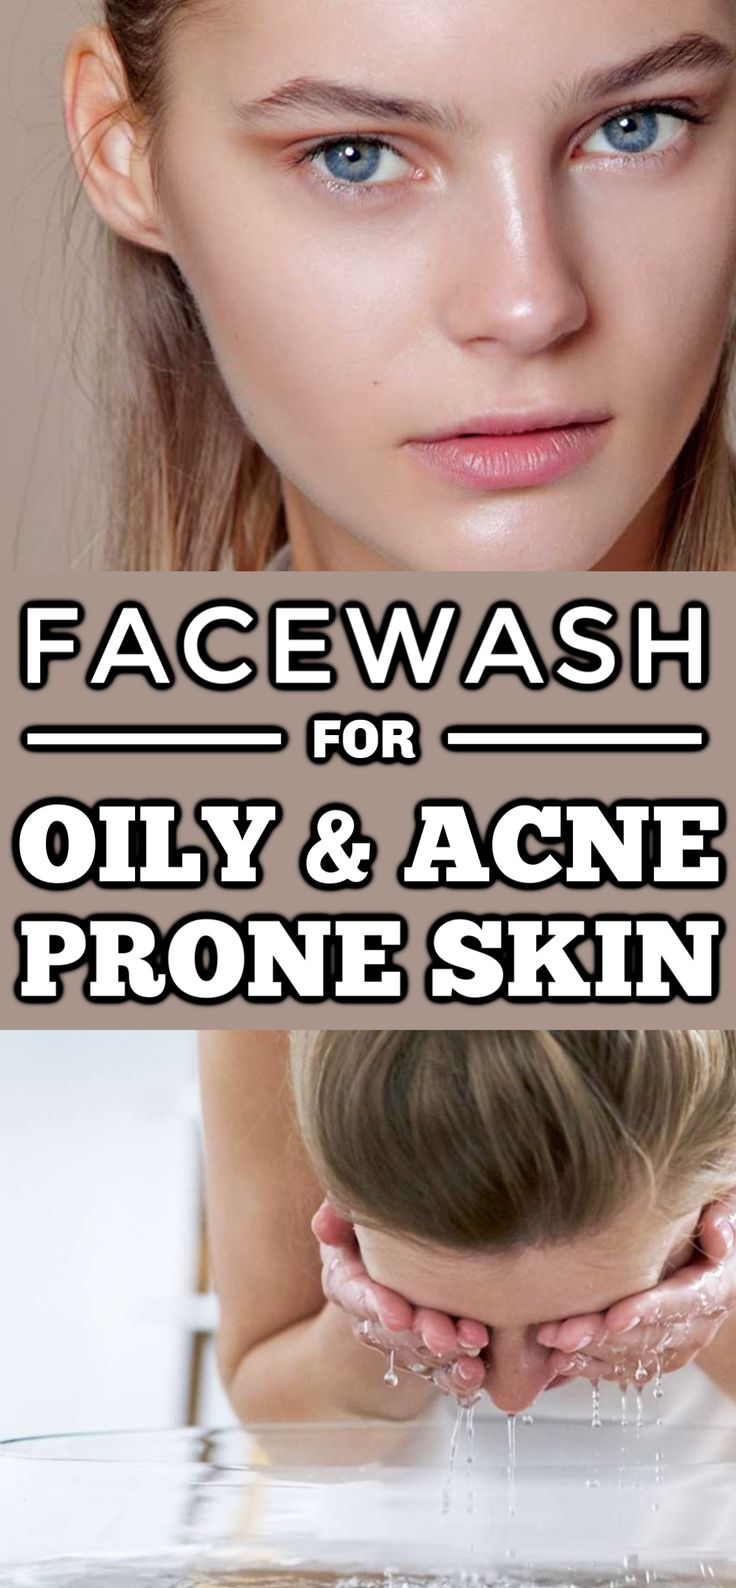 5 DIY Natural Face Wash For Oily And Acne Prone Skin